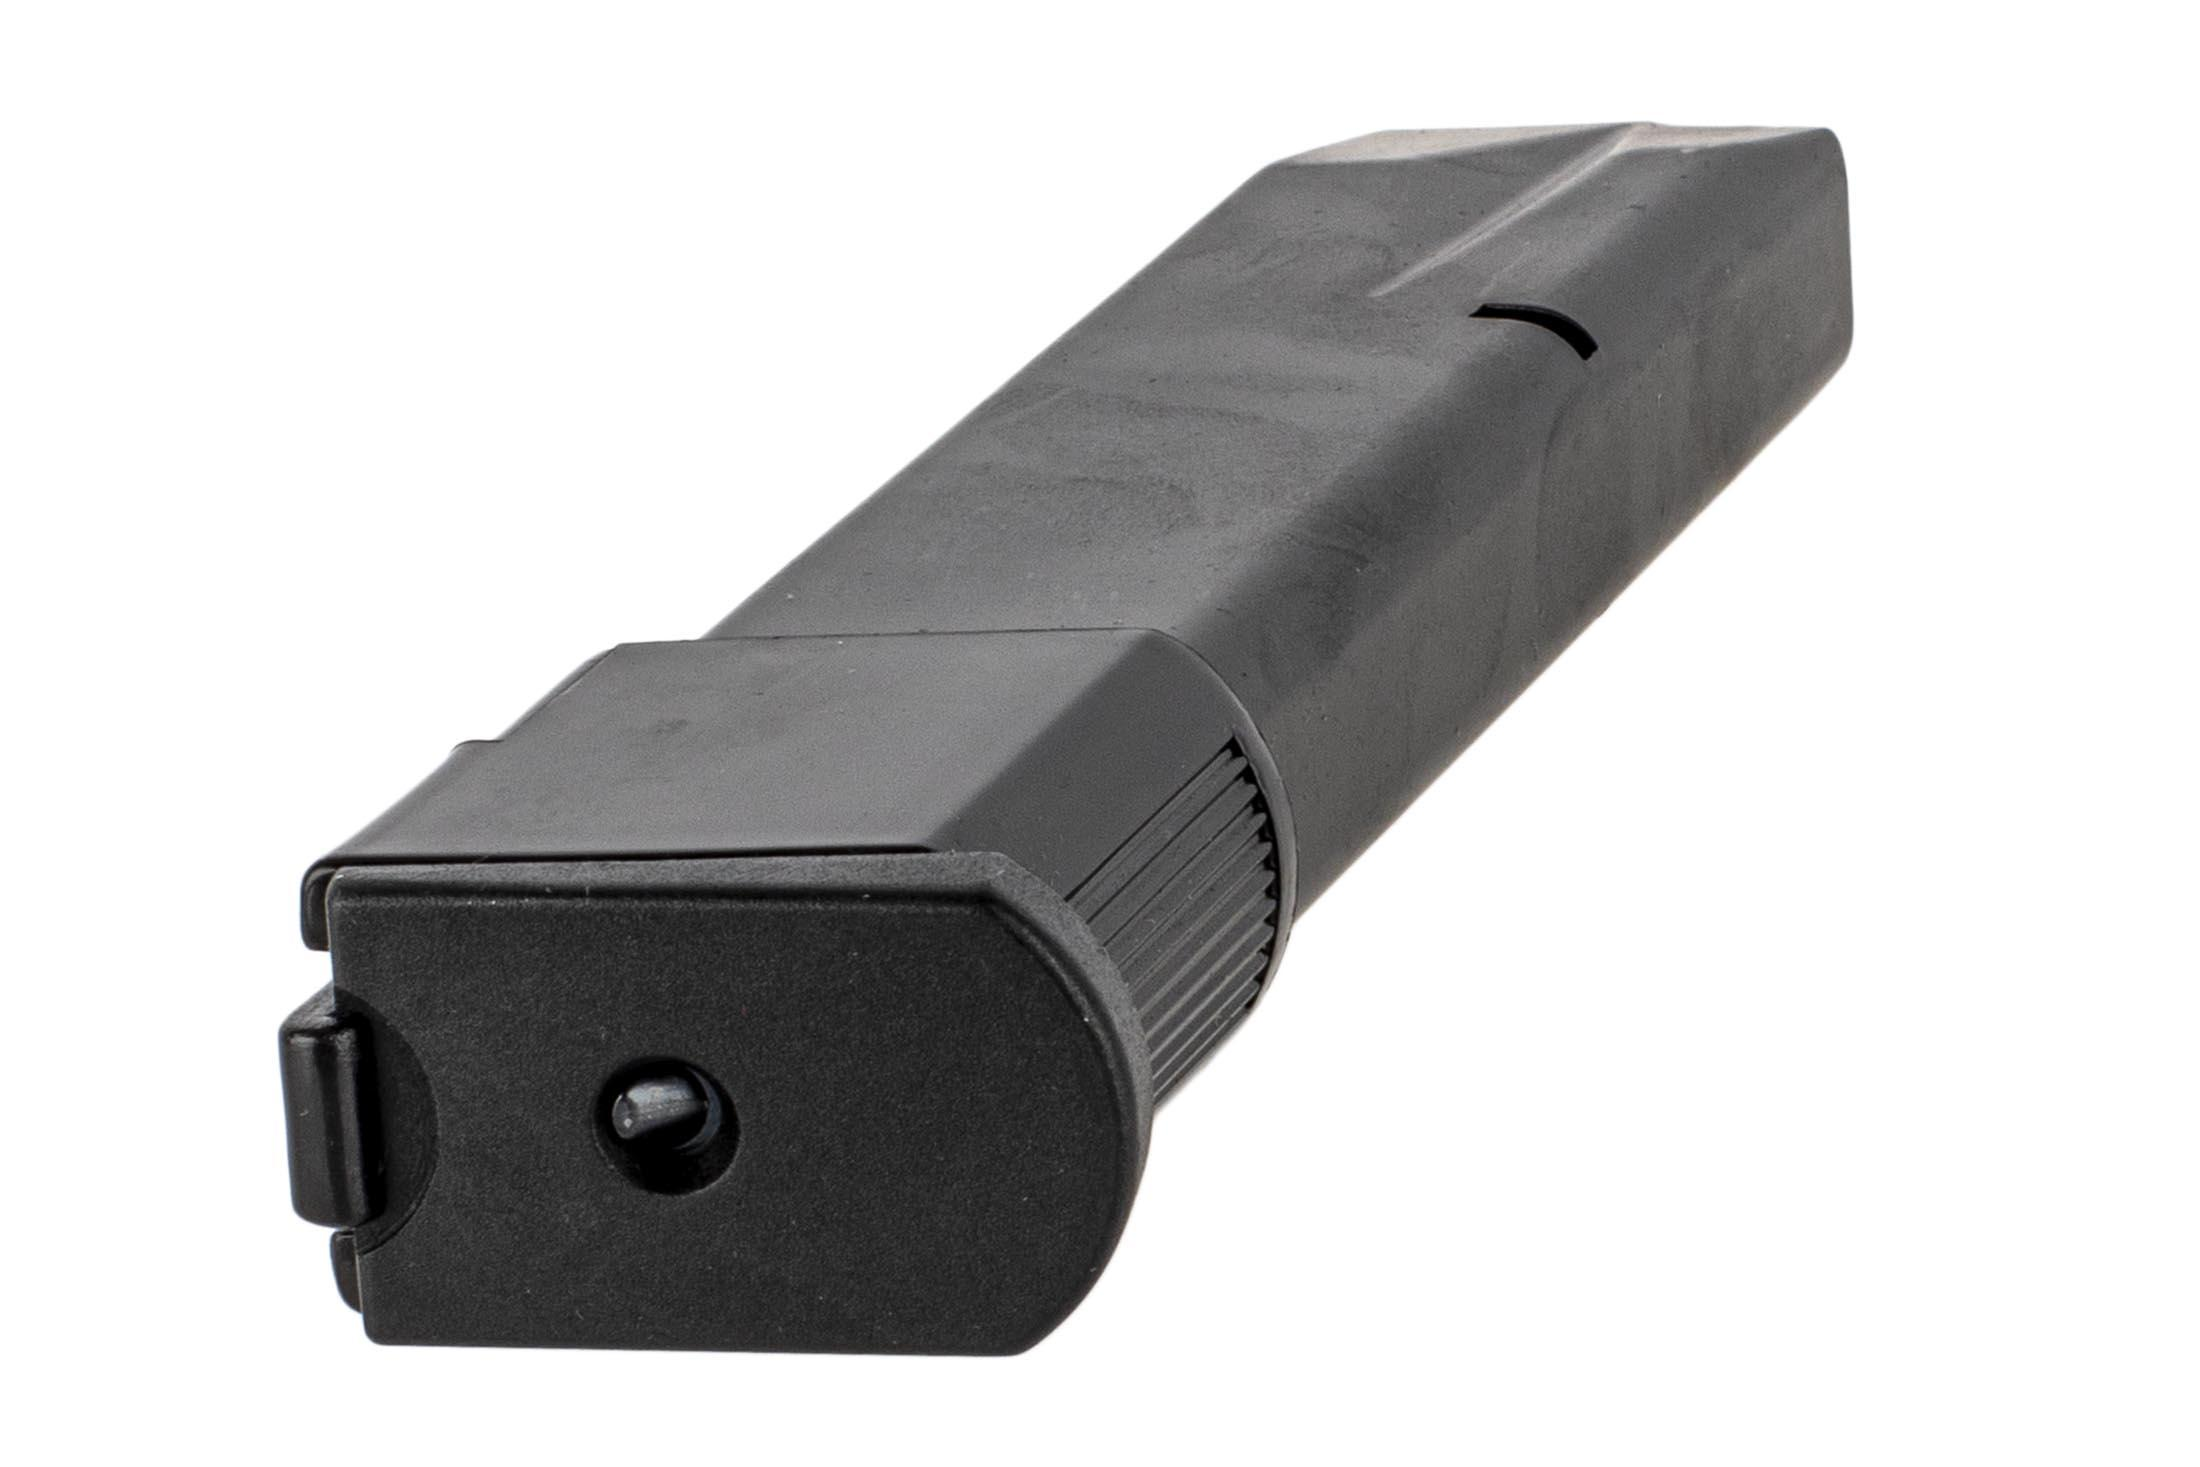 The Beretta 92FS Extended Magazine features a polymer base pad and stainless steel construction